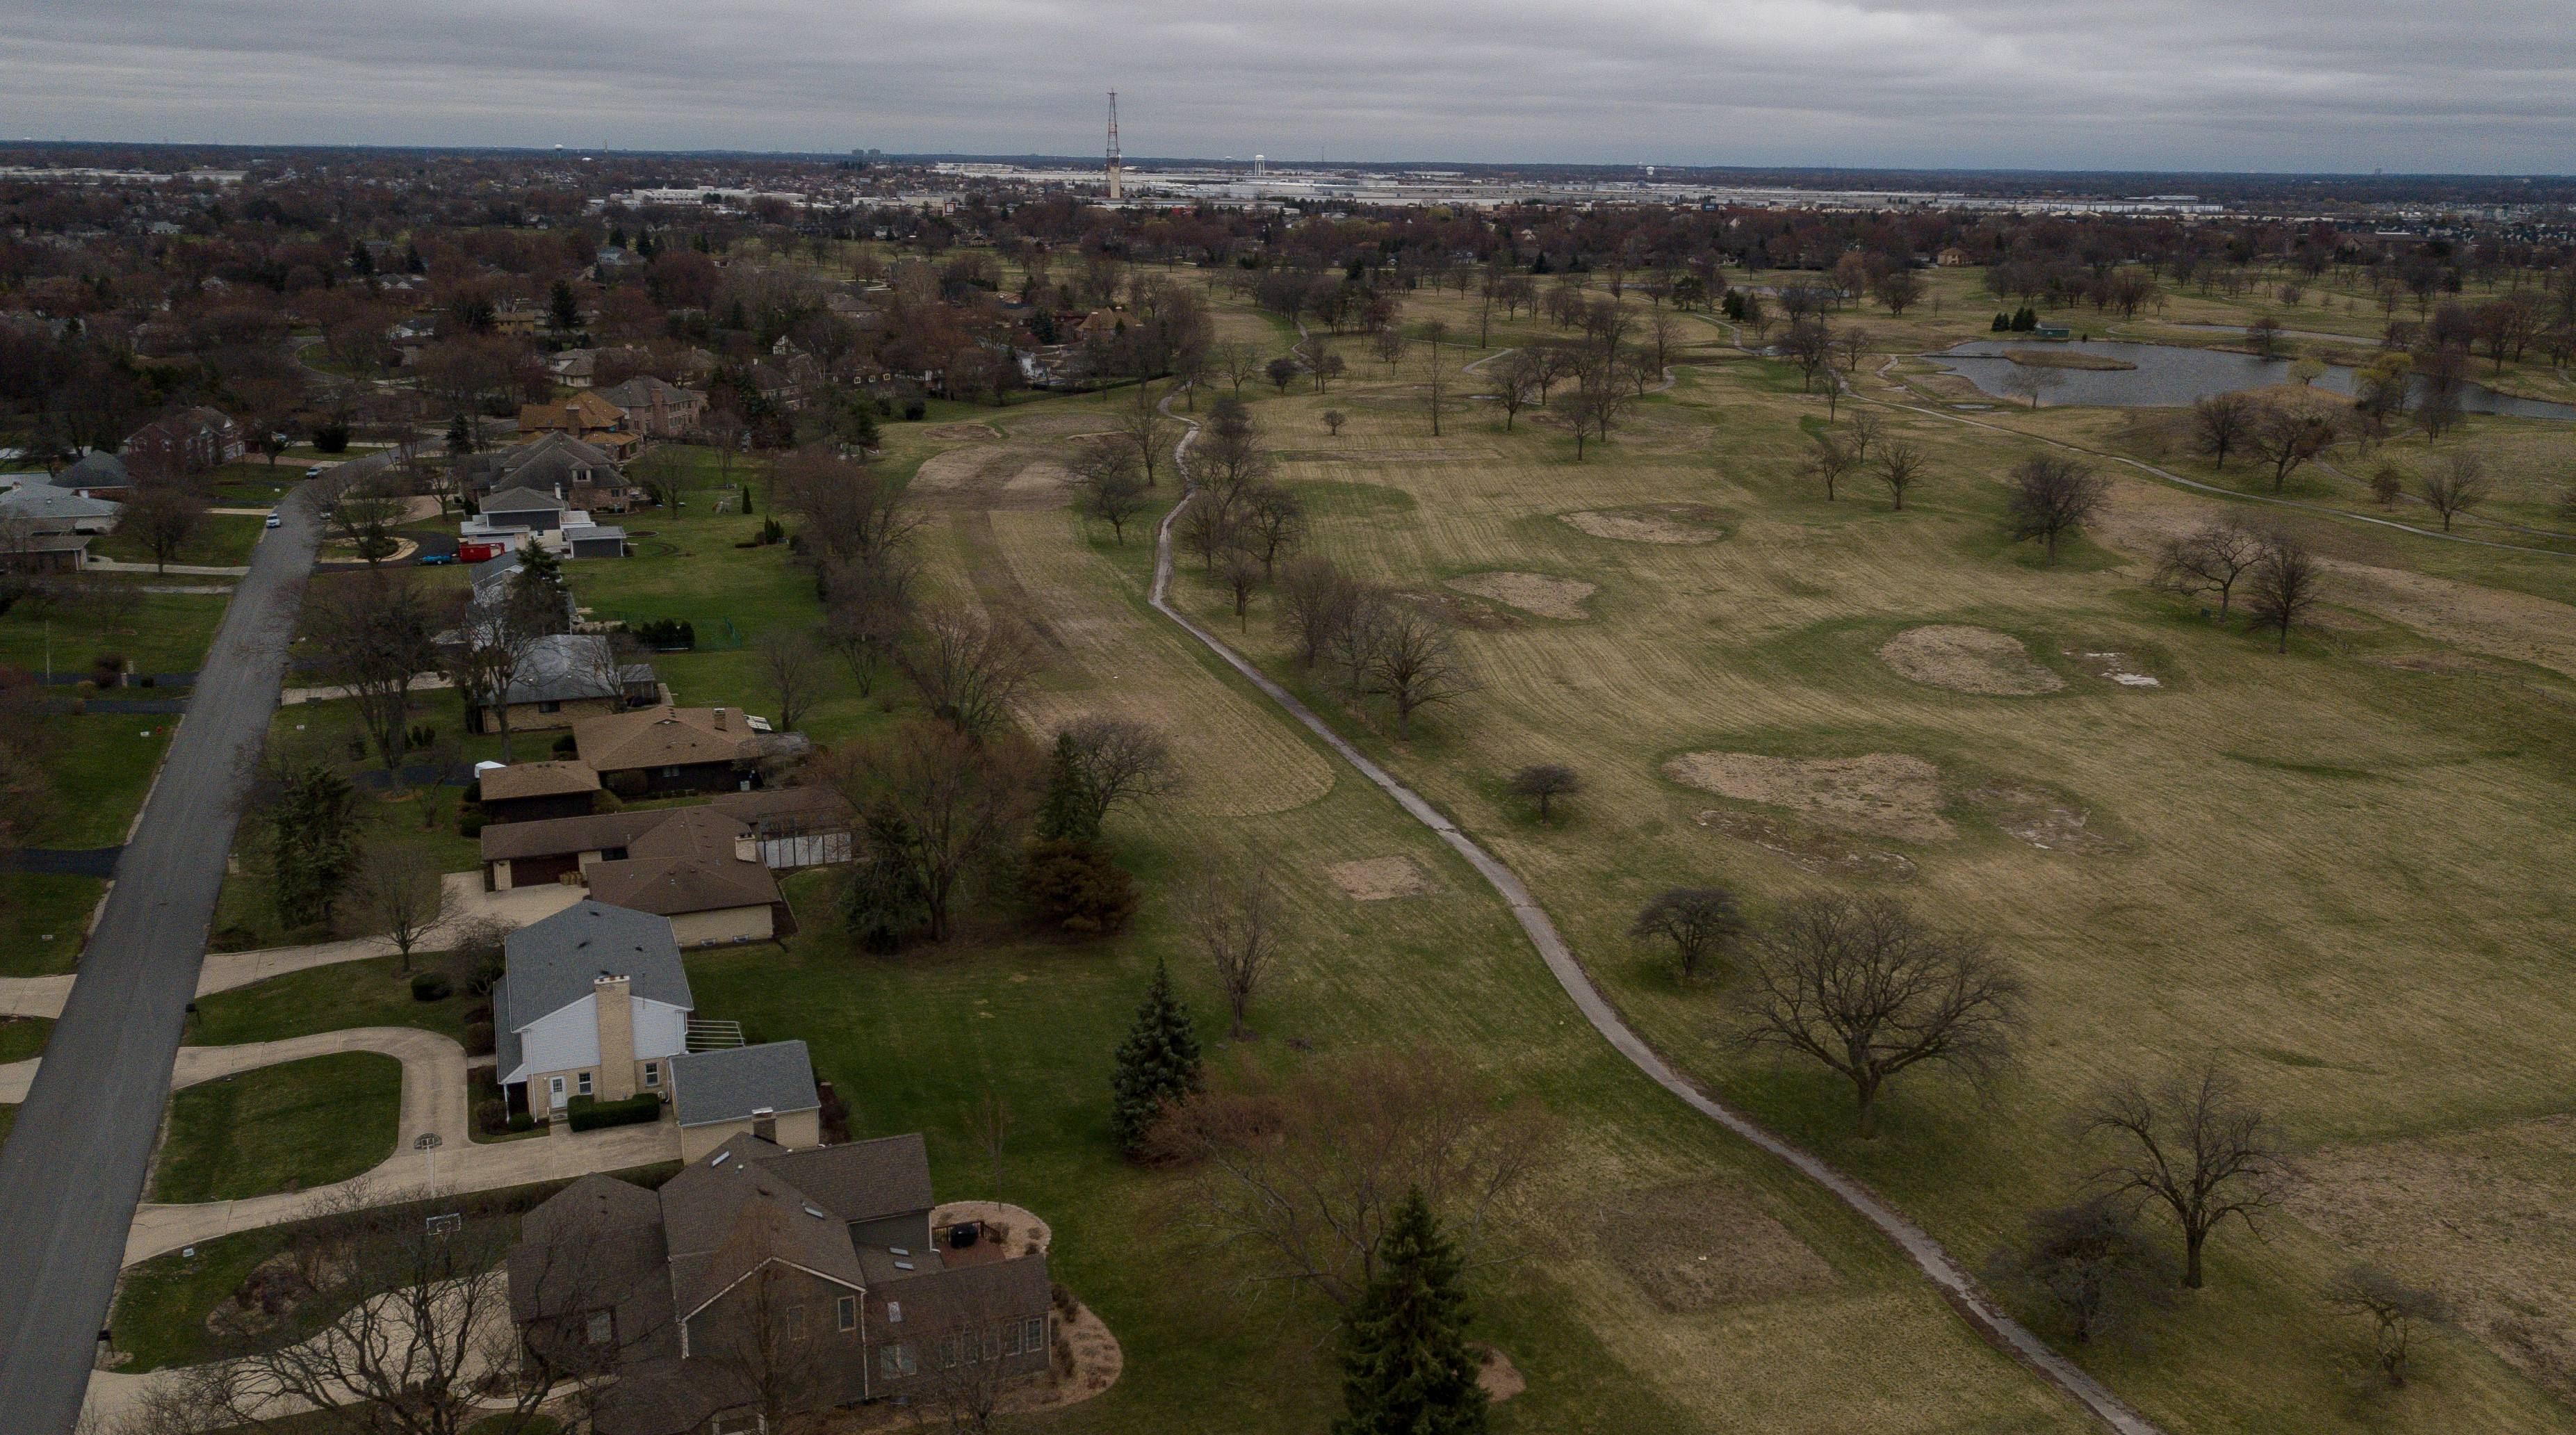 K. Hovnanian Homes is seeking permission from Bloomingdale to redevelop roughly 191 acres of former golf course land at Indian Lakes Resort into a neighborhood for residents 55 and older.